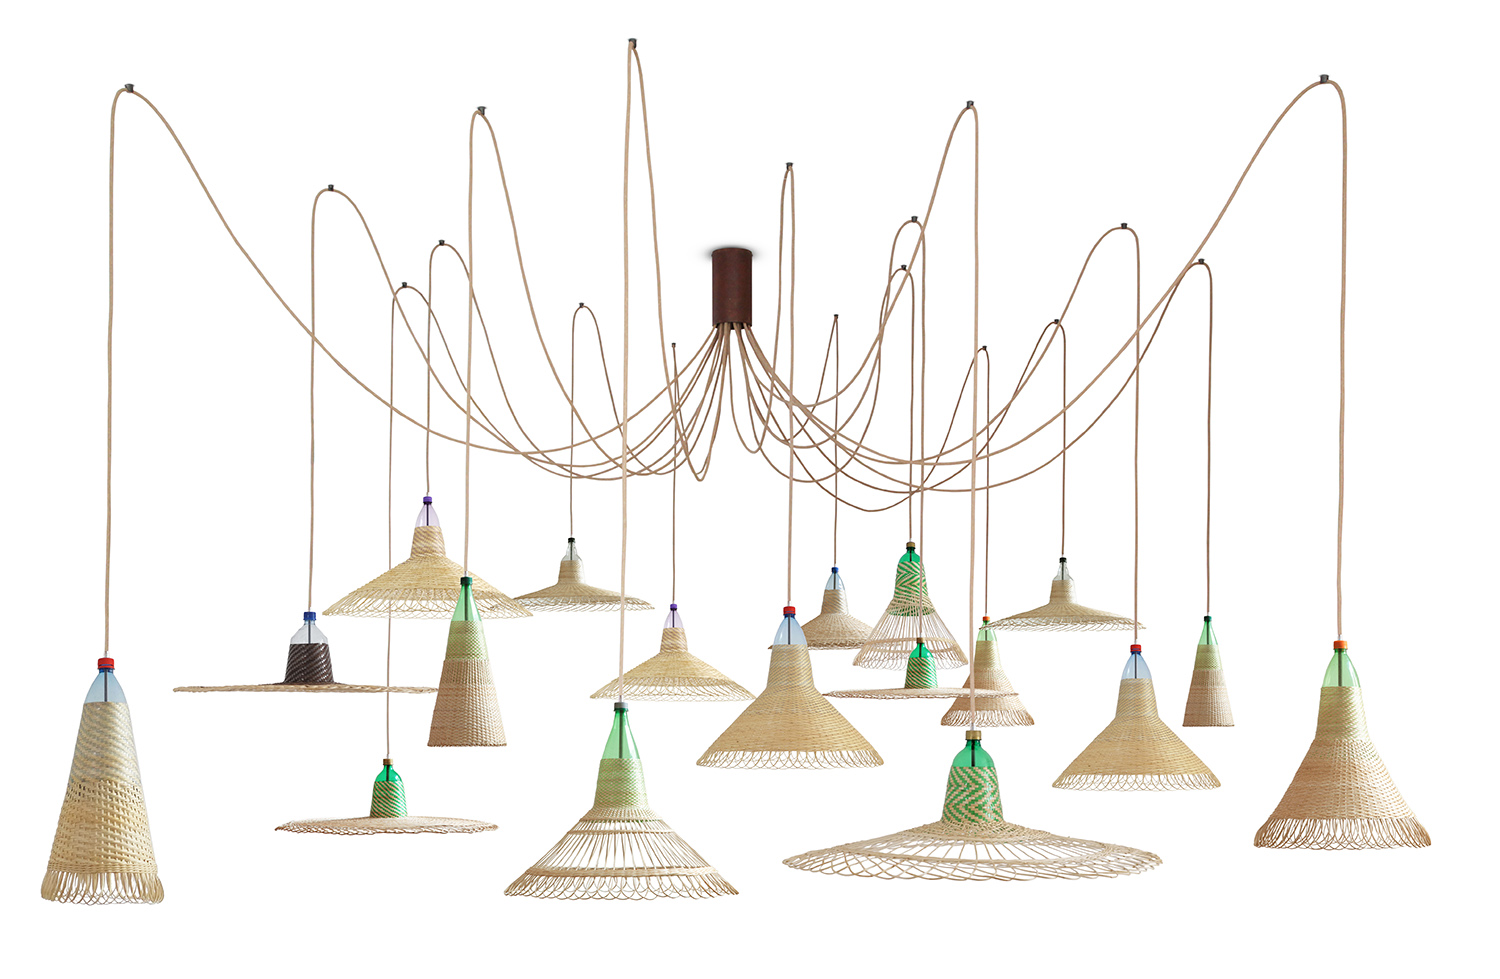 The 'Chimbarongo' lights from PET LAMPS are made in Chile utilising recycled soft drink bottles as the shape former for the woven material. This version is the 18 lamp chandelier.